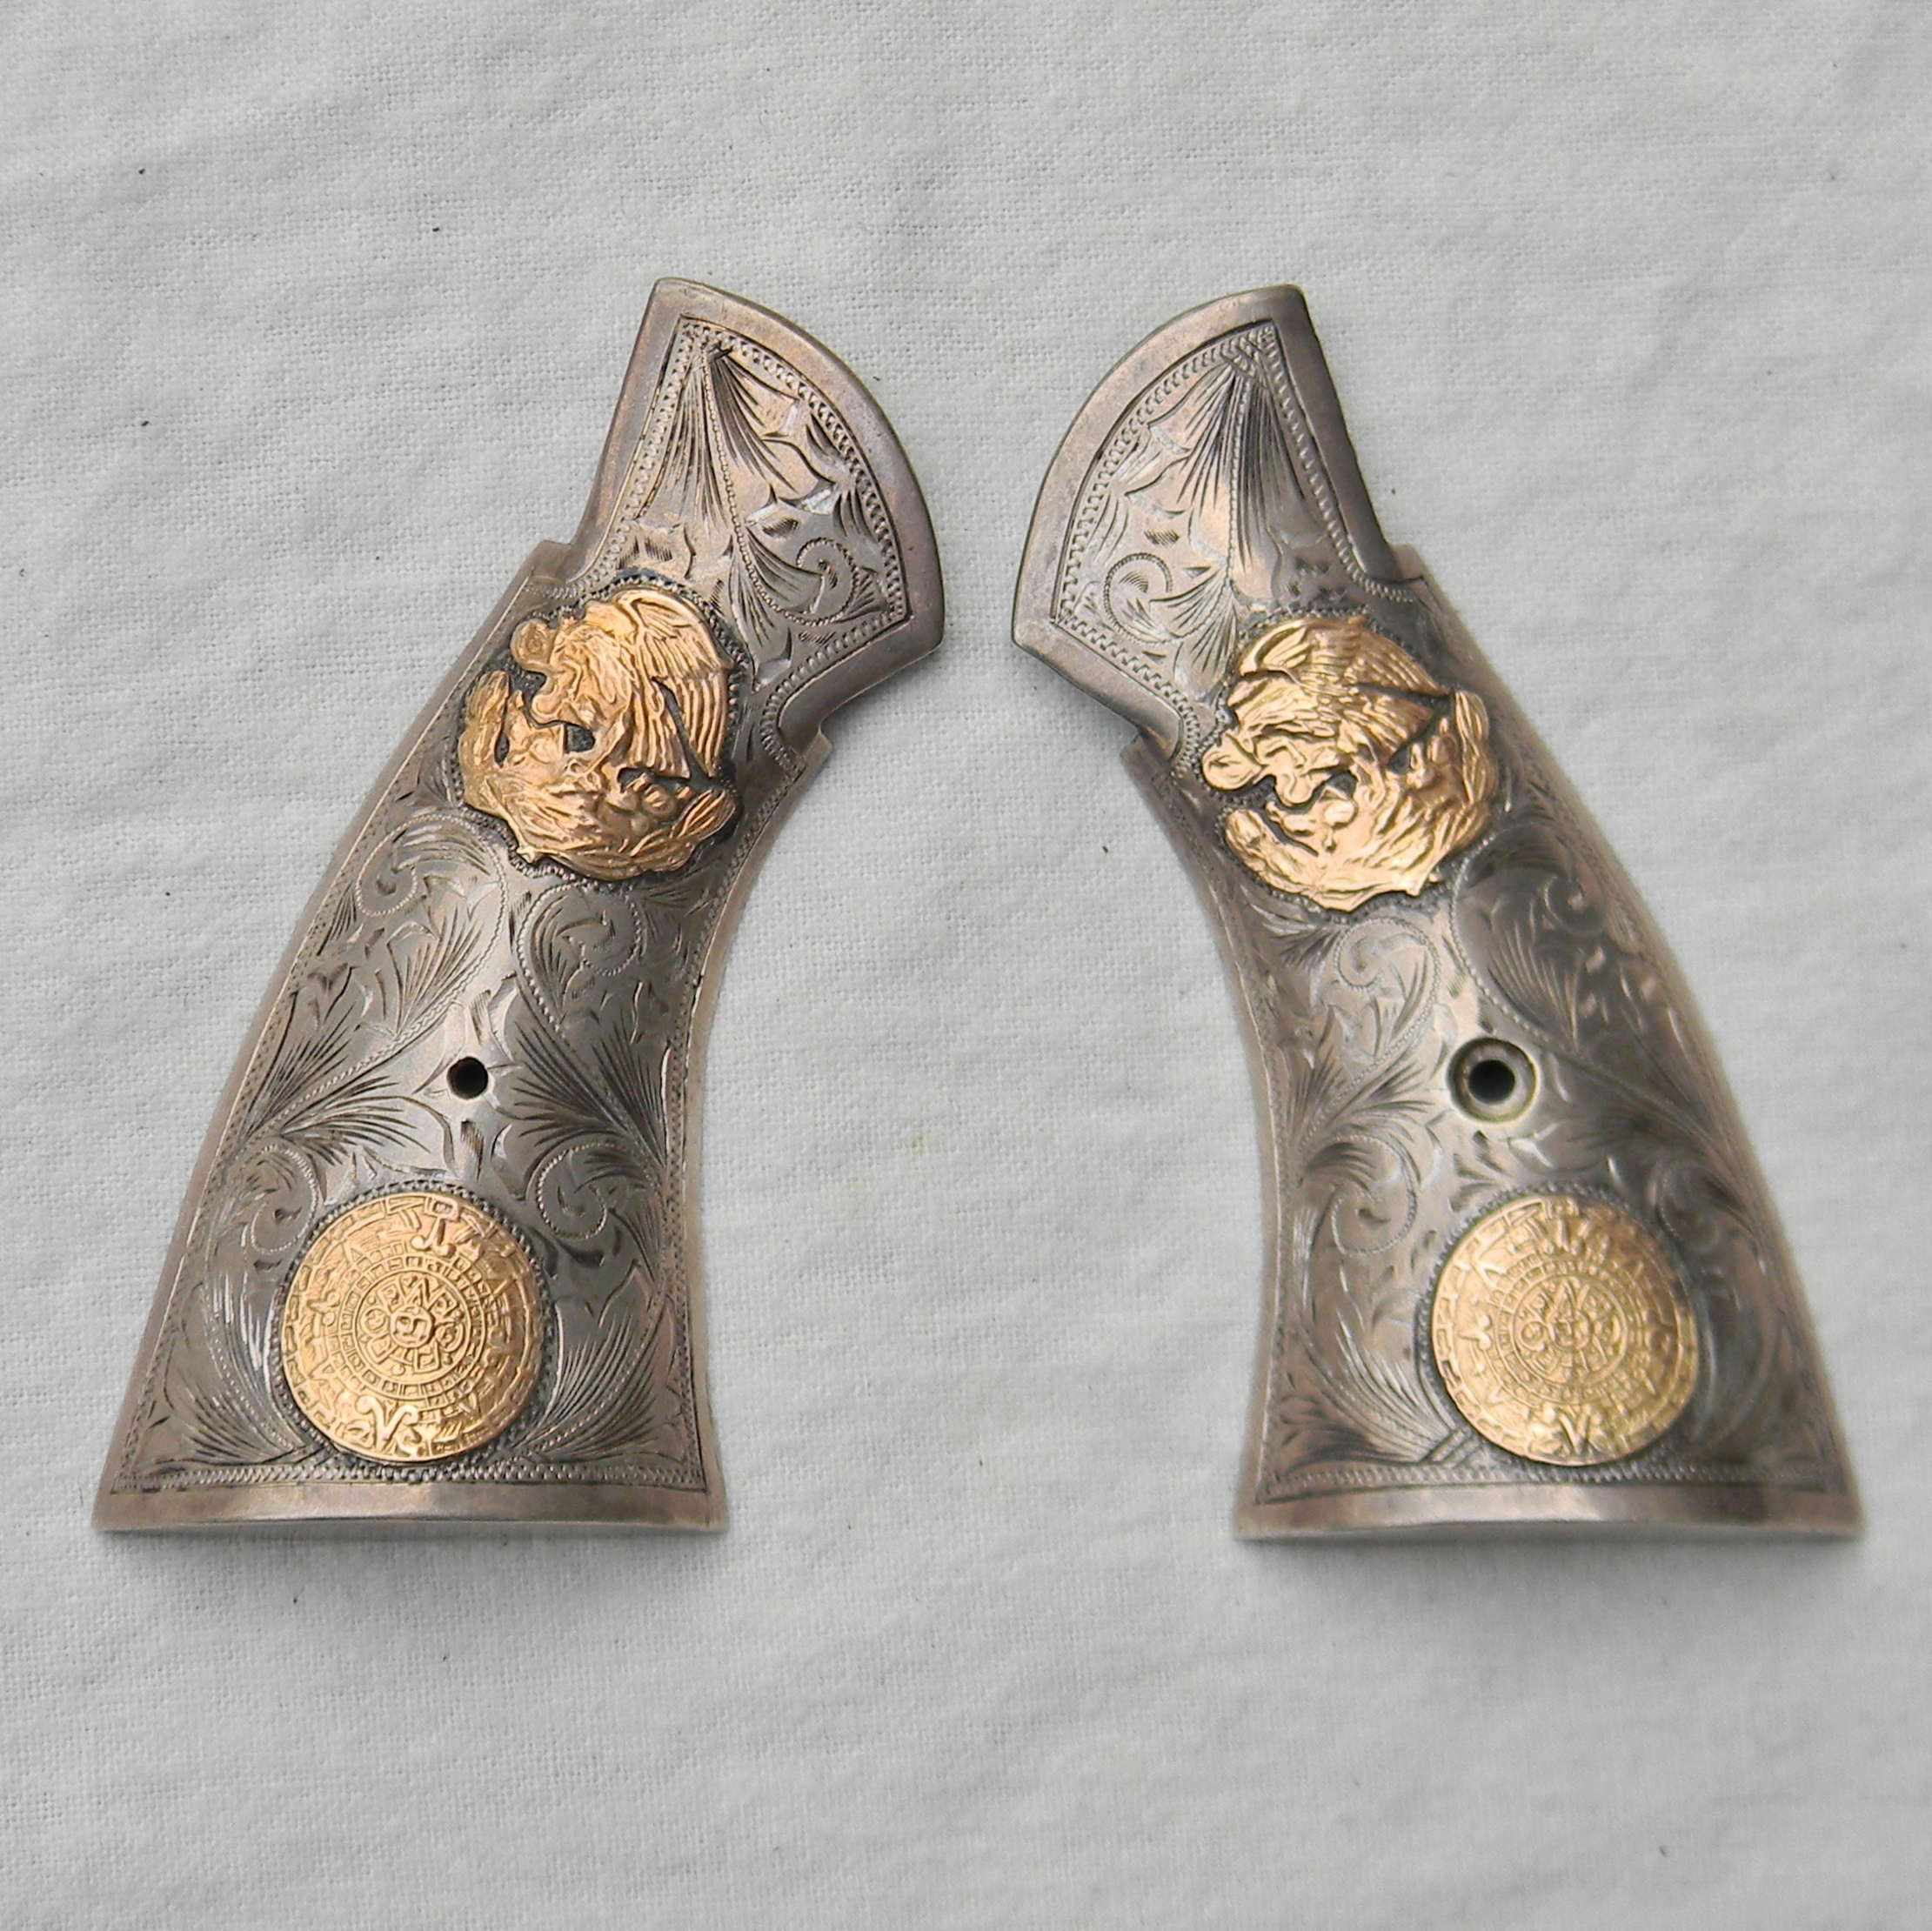 Smith Wesson revolver custom grips engraved silver gold inlays ...